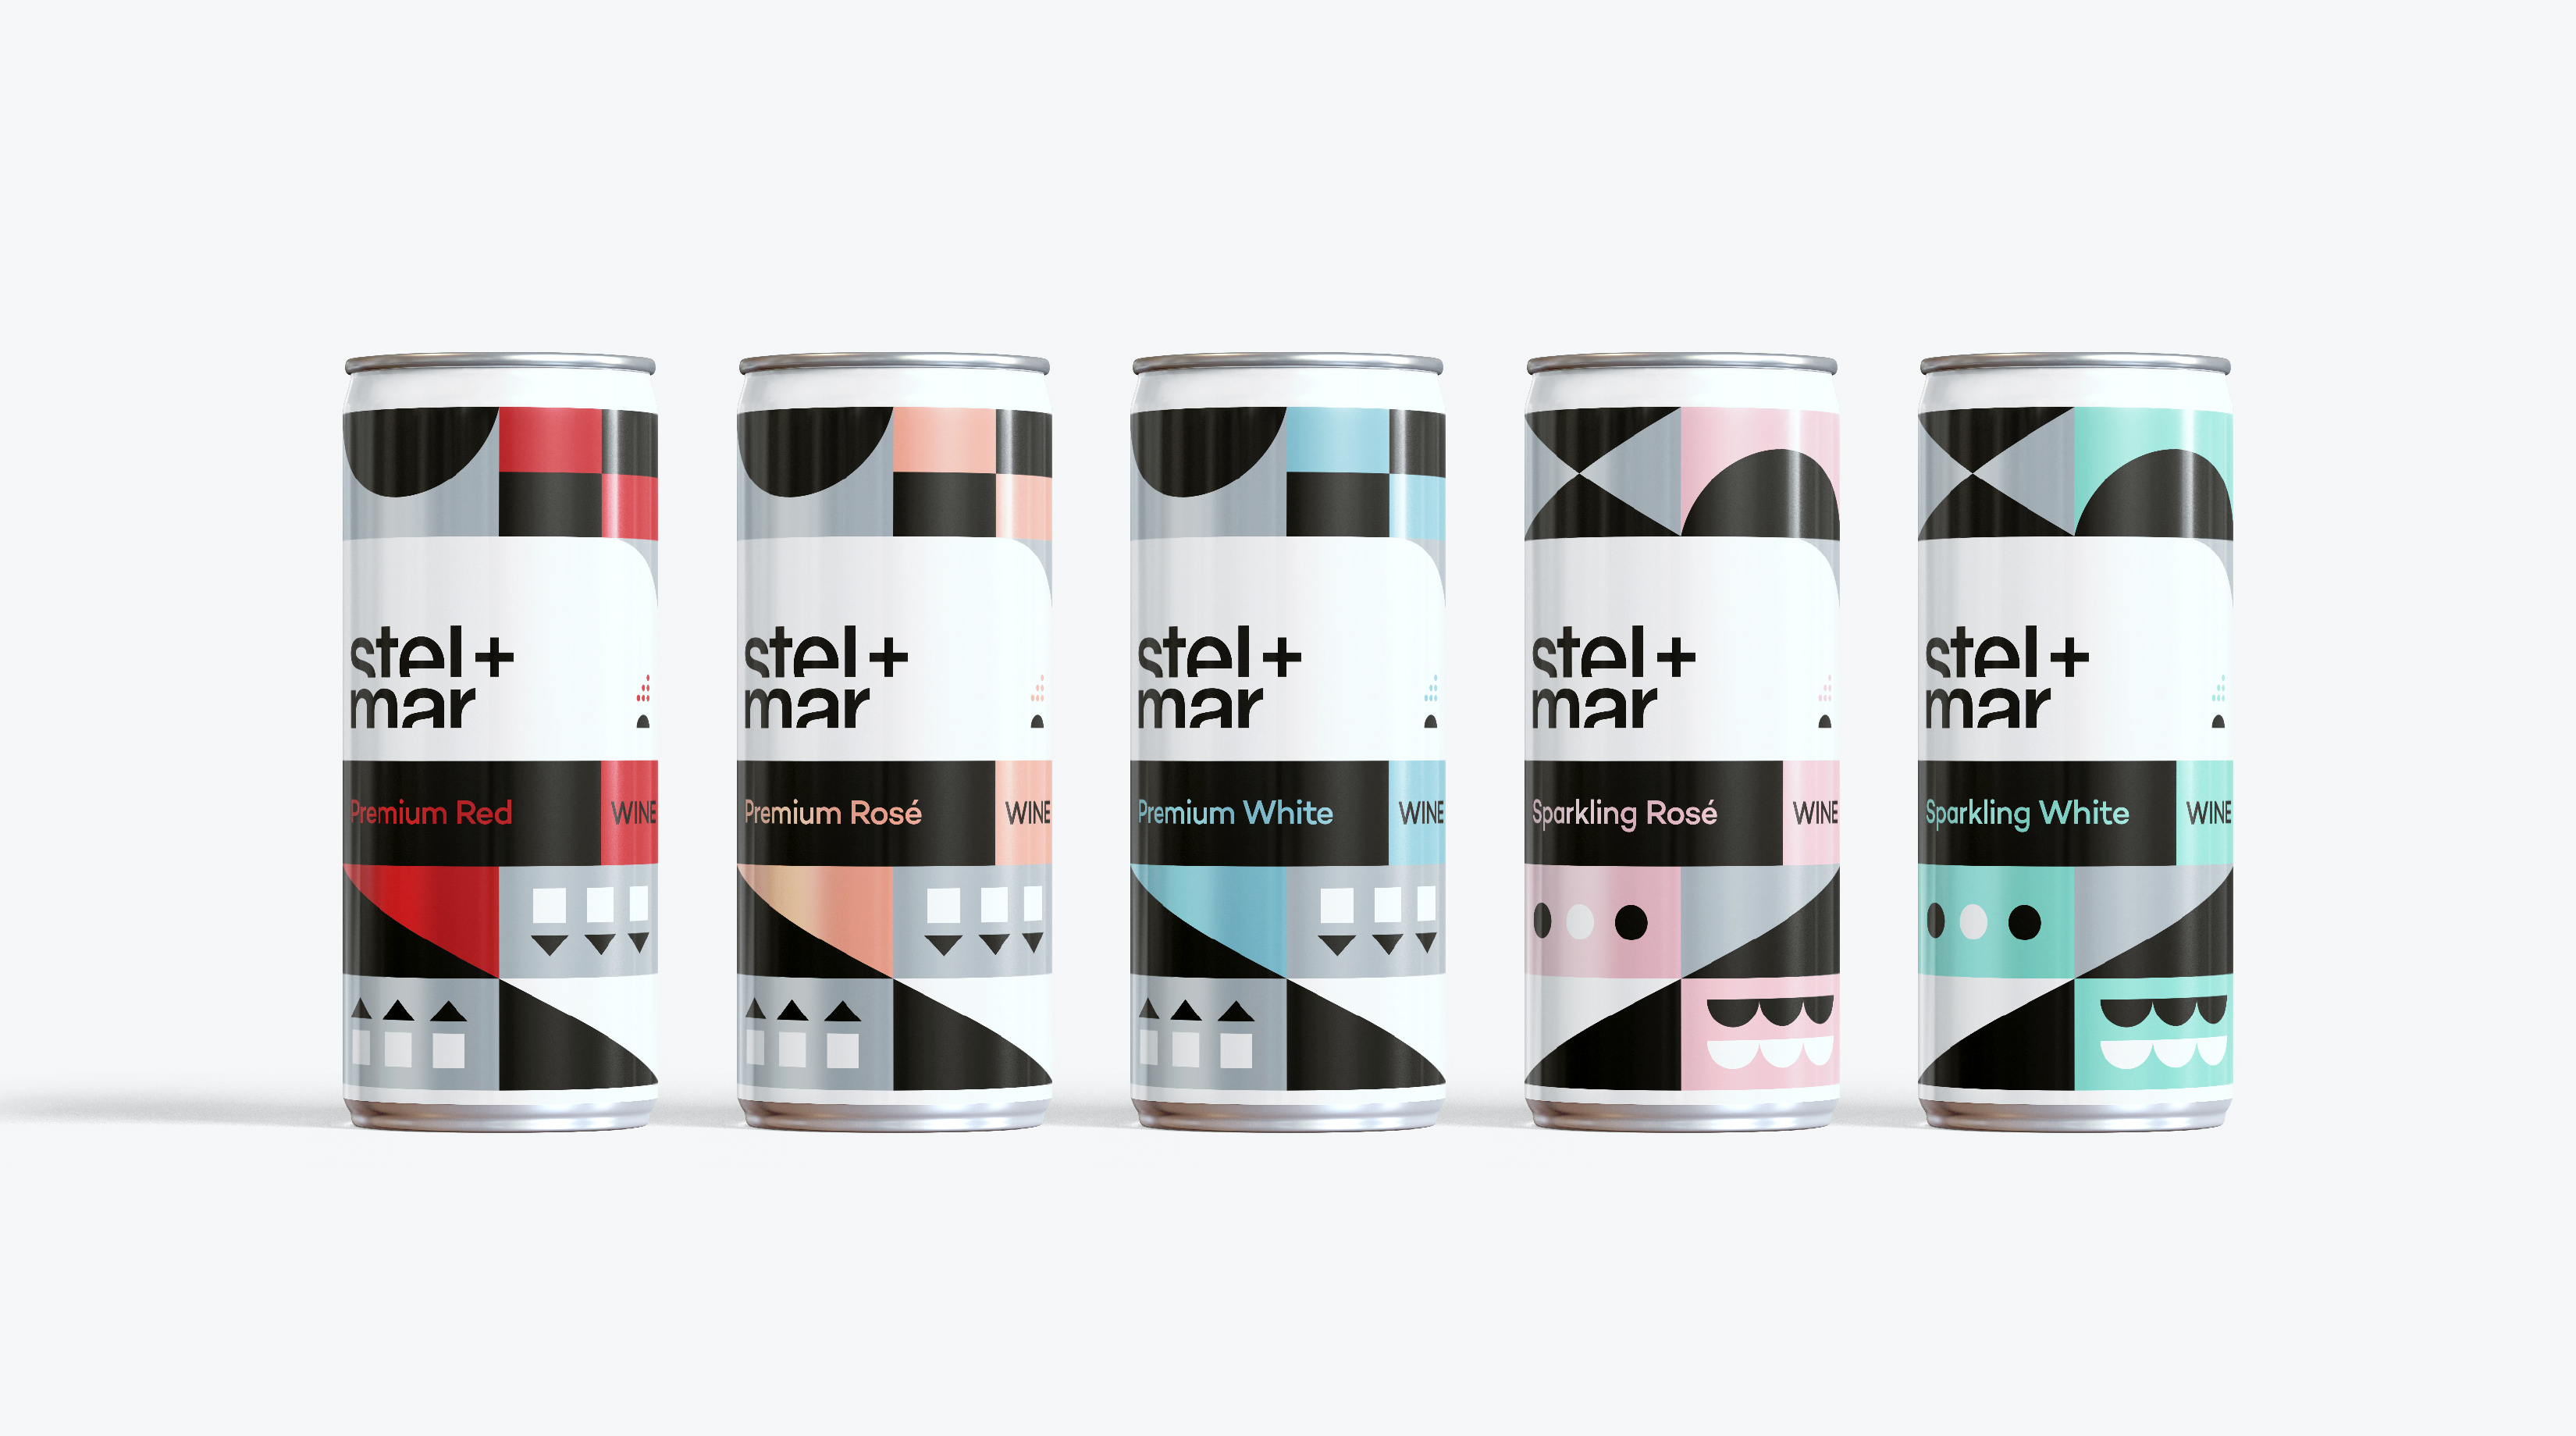 stel+mar Packaging & Branding Design